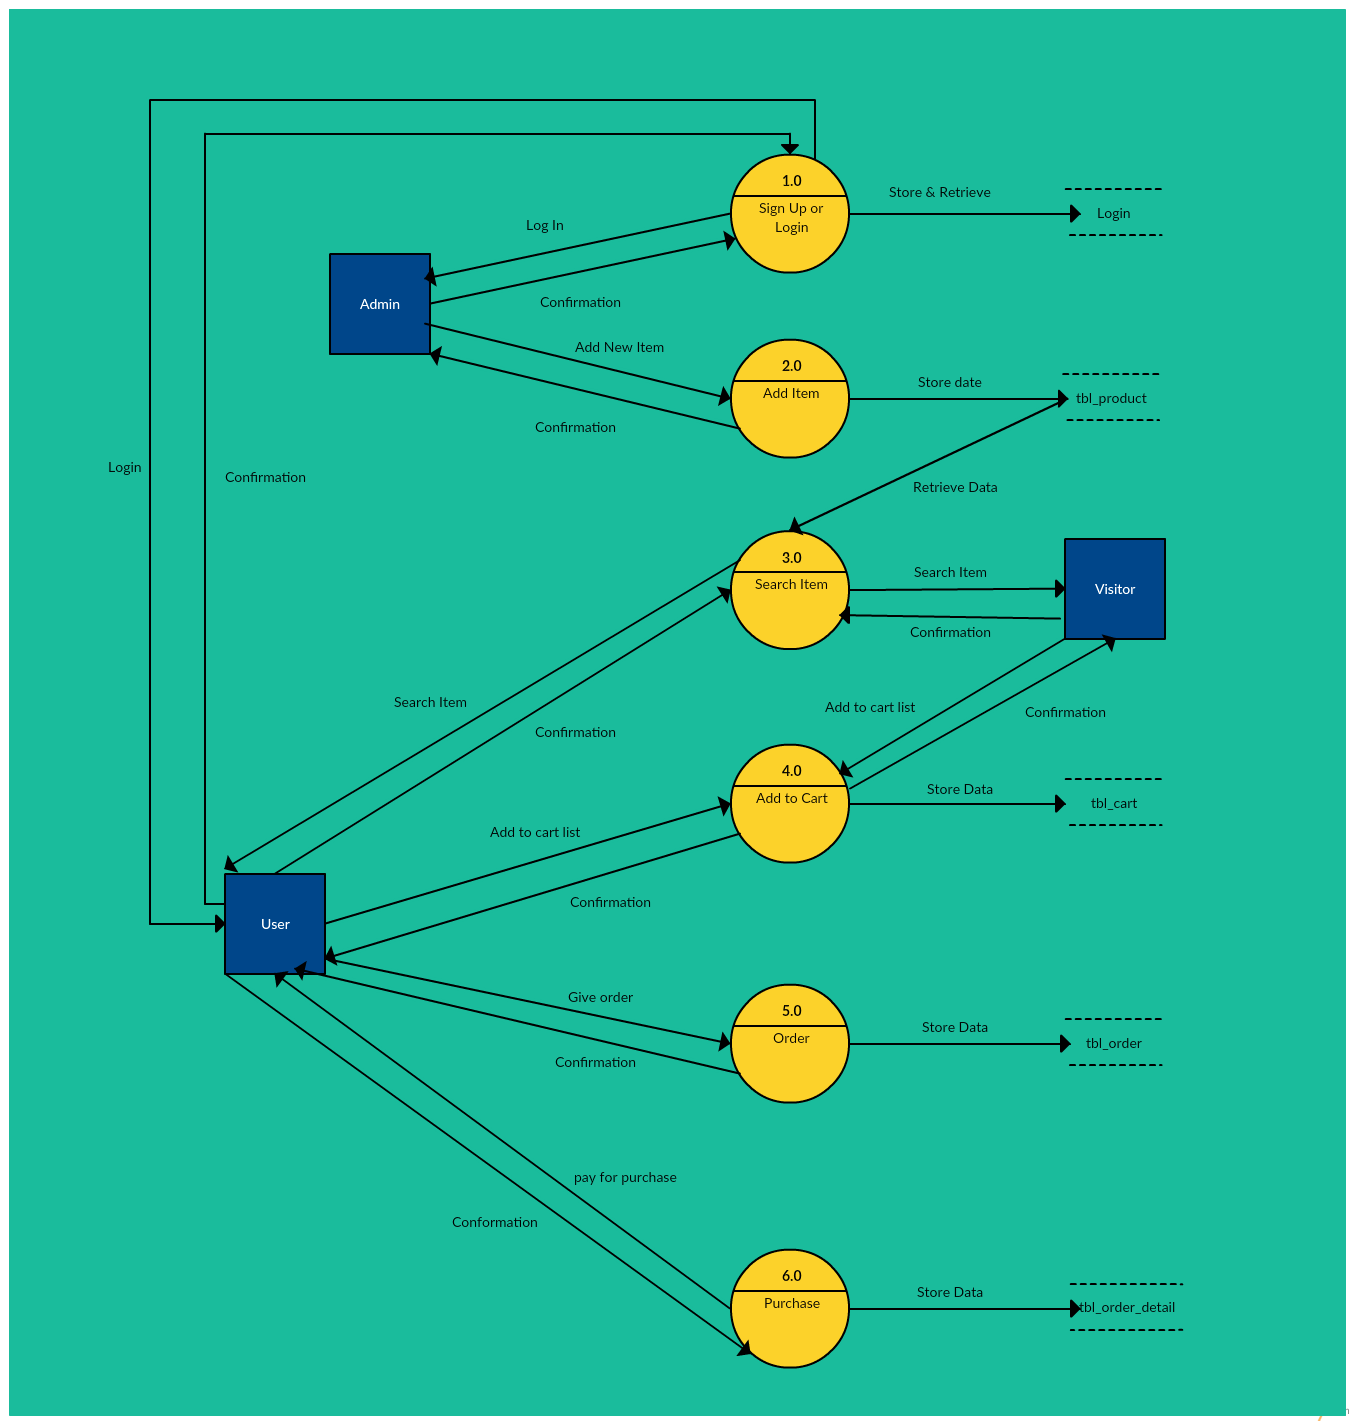 Data flow diagram templates to map data flows creately blog level 2 data flow diagram templates available in creately ccuart Choice Image